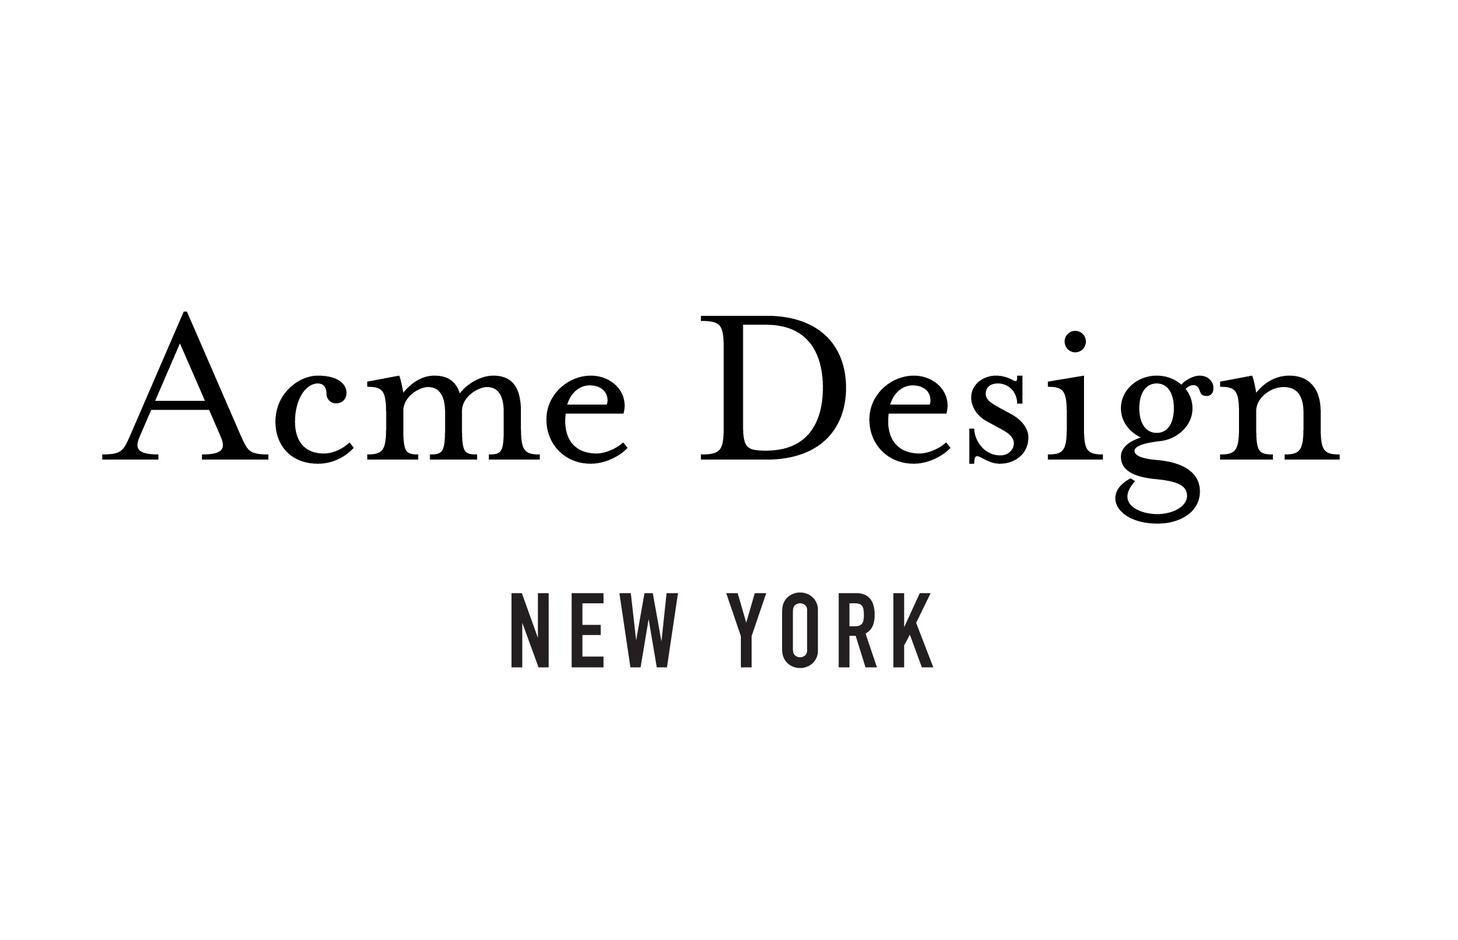 Acme Design New York